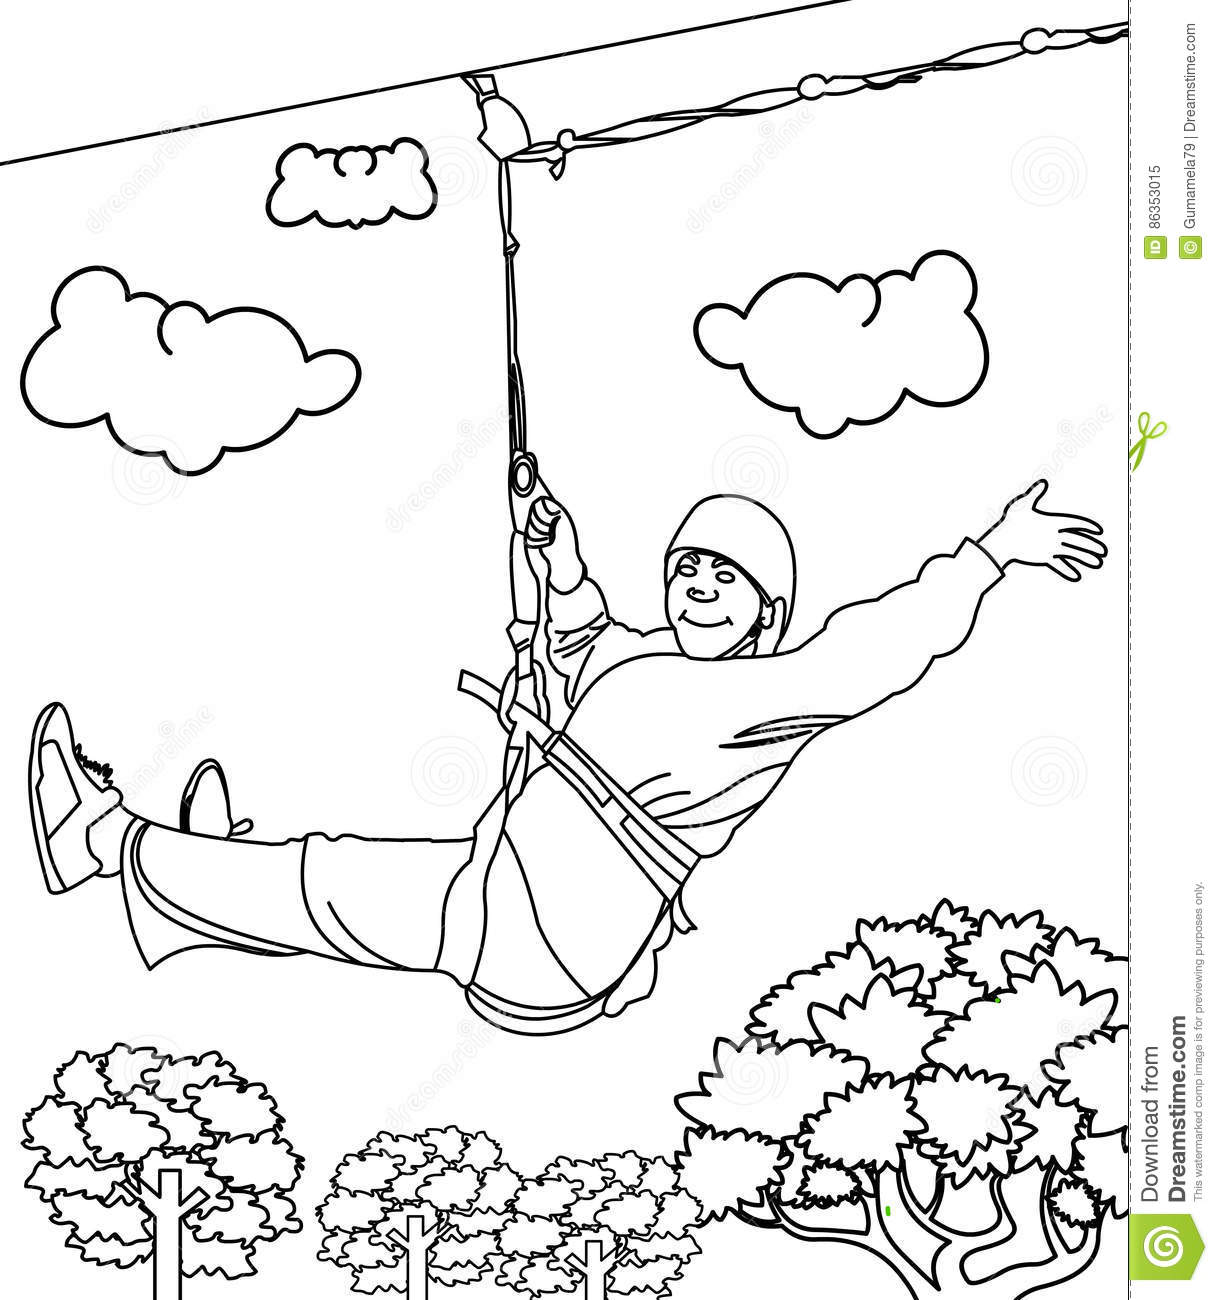 D Line Drawings Zip File : The gallery for gt zip line drawing